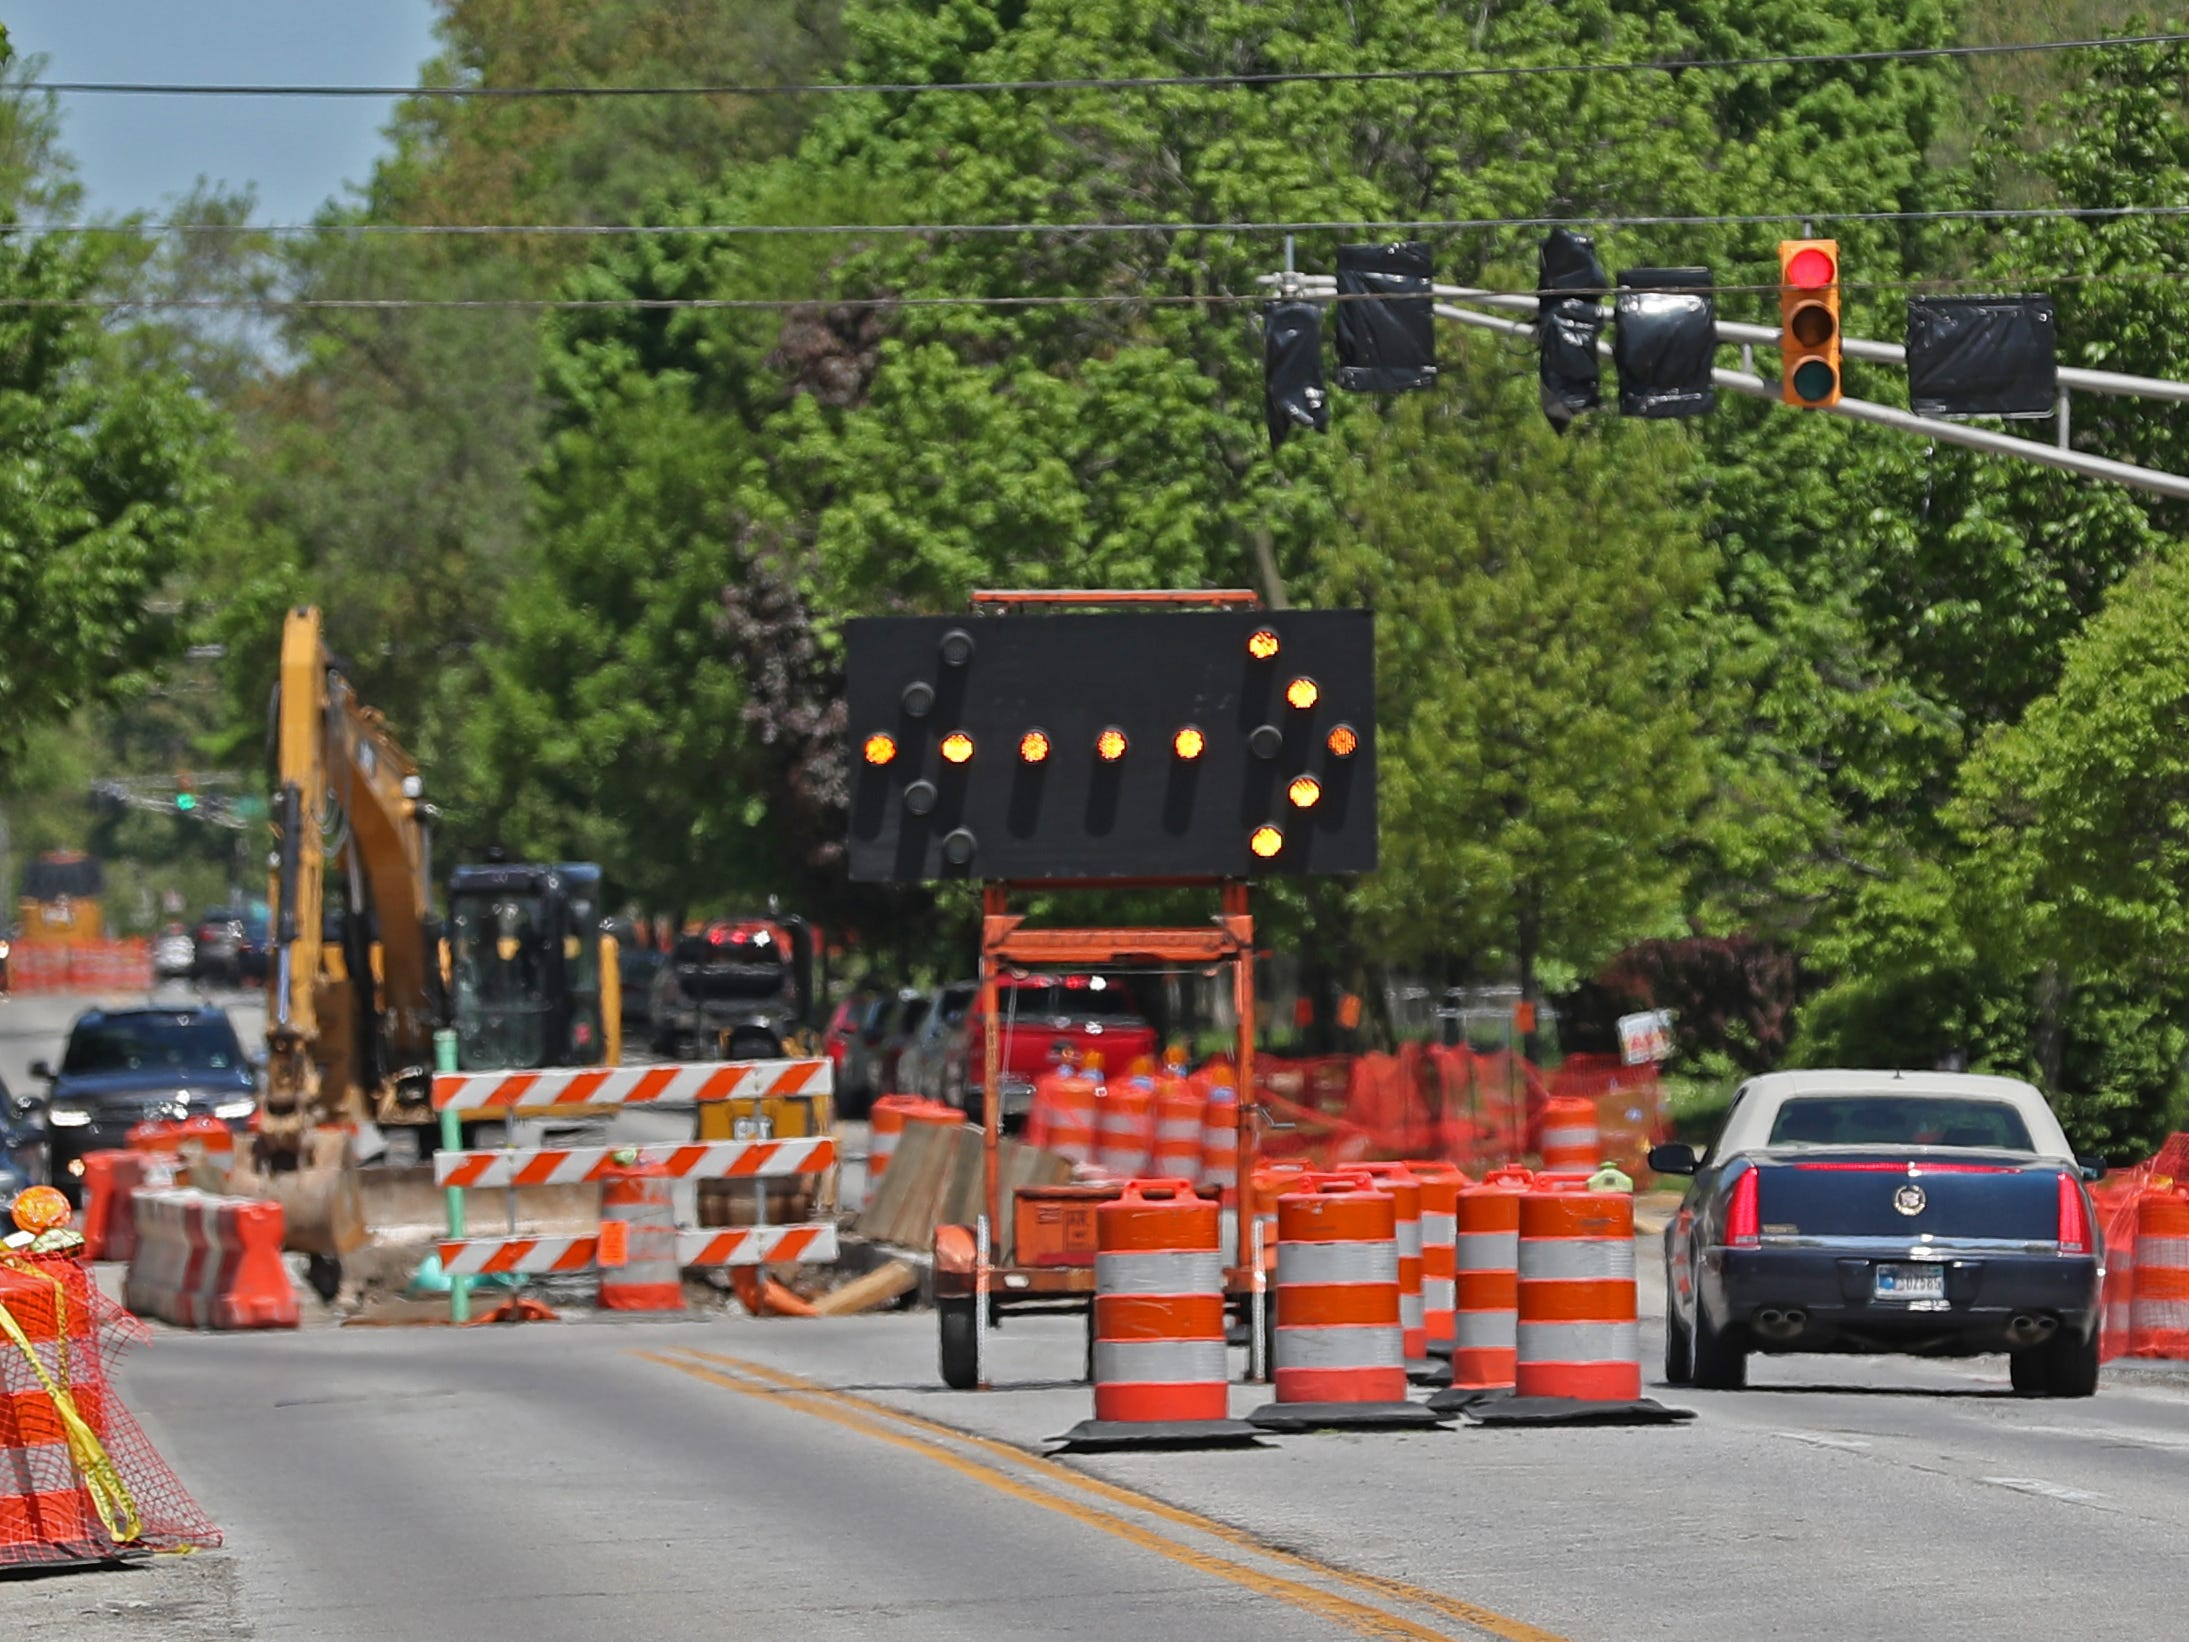 Cars move past Red Line construction on College Ave. near 42nd St., Sunday, May 5, 2019.  The City has updated the timeline when the Red Line Bus Rapid Transit system should open, which is later in 2019 summer.